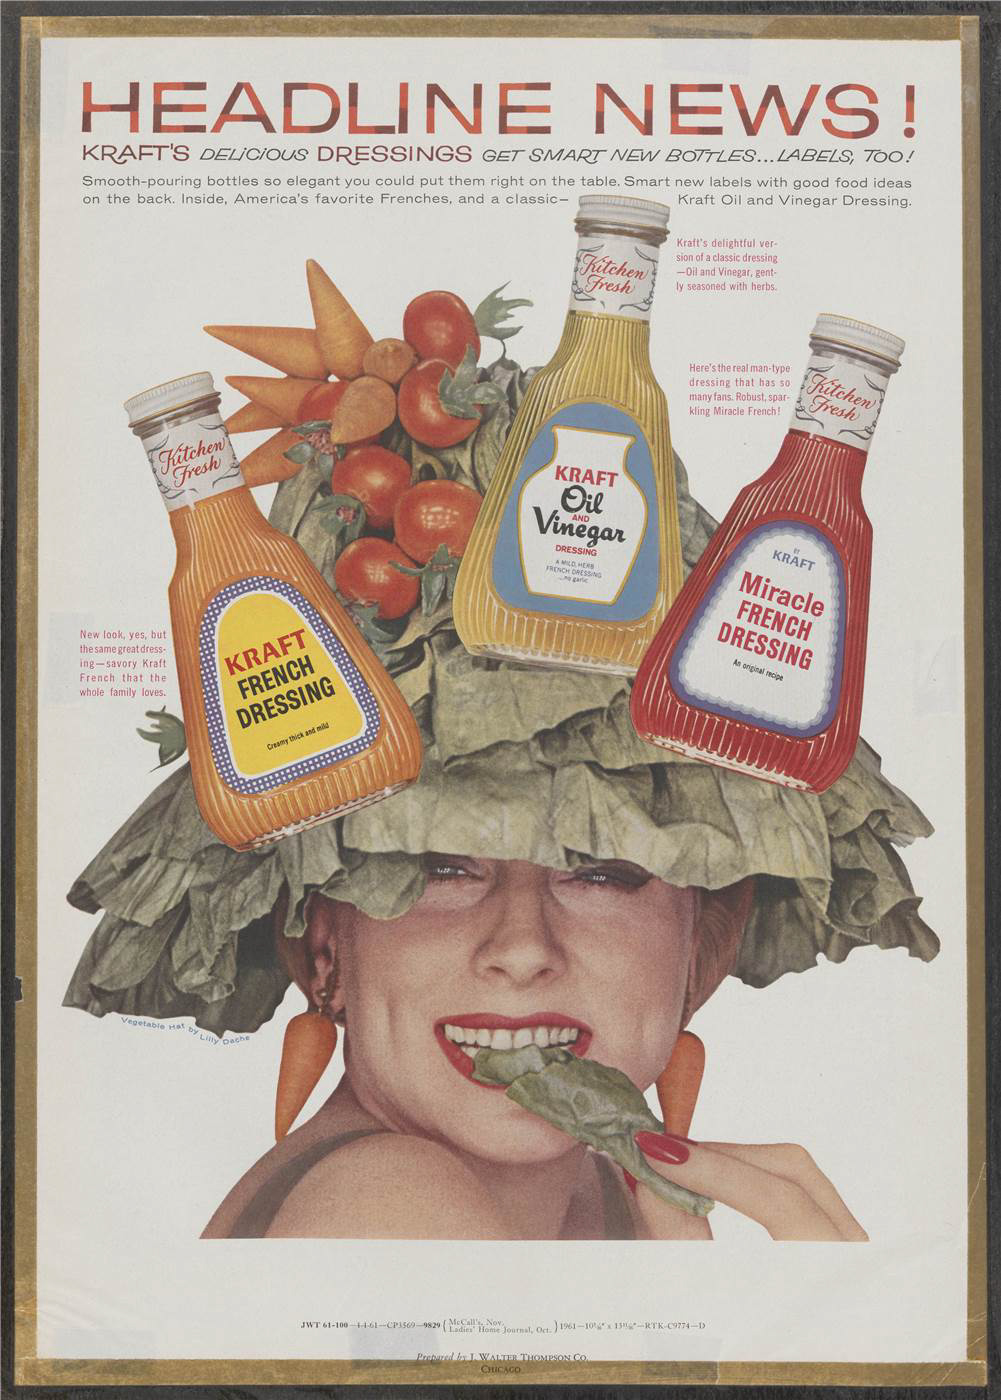 """Headline News! Kraft's delicious dressings get smart new bottles... and labels too!"" Bottles of Kraft salad dressing are superimposed over the head of a woman, who is wearing a hat and earrings made from salad leaves, tomatoes and carrots. Emphasises the design and utility of the new bottles."